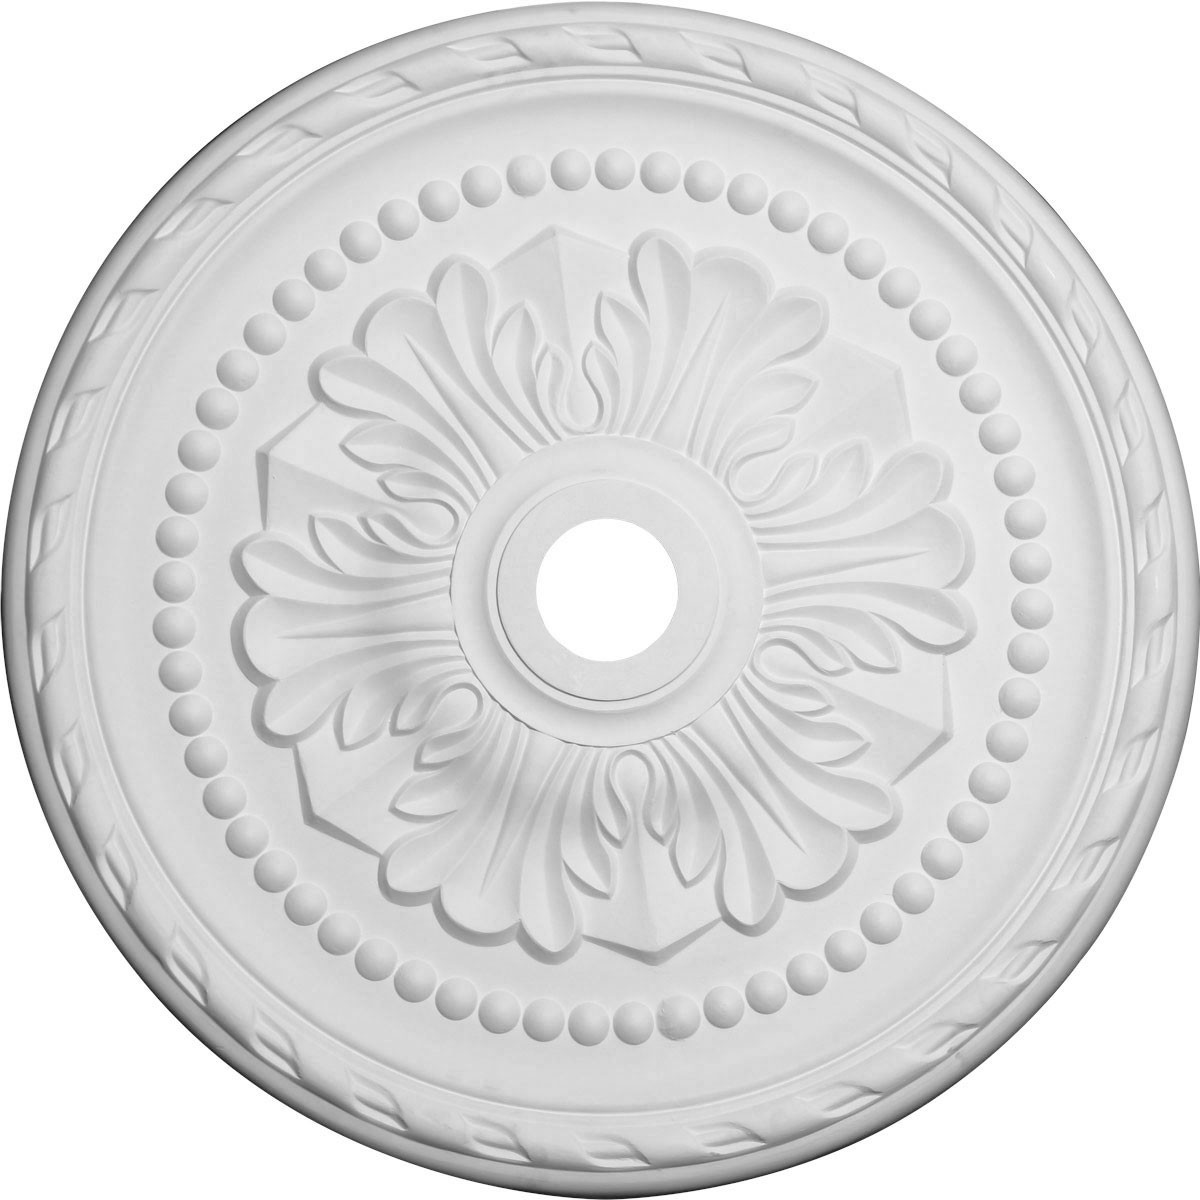 """EM-CM31PM - 31 1/2""""OD x 3 5/8""""ID x 1 3/4""""P Palmetto Ceiling Medallion (Fits Canopies up to 7 5/8"""")"""